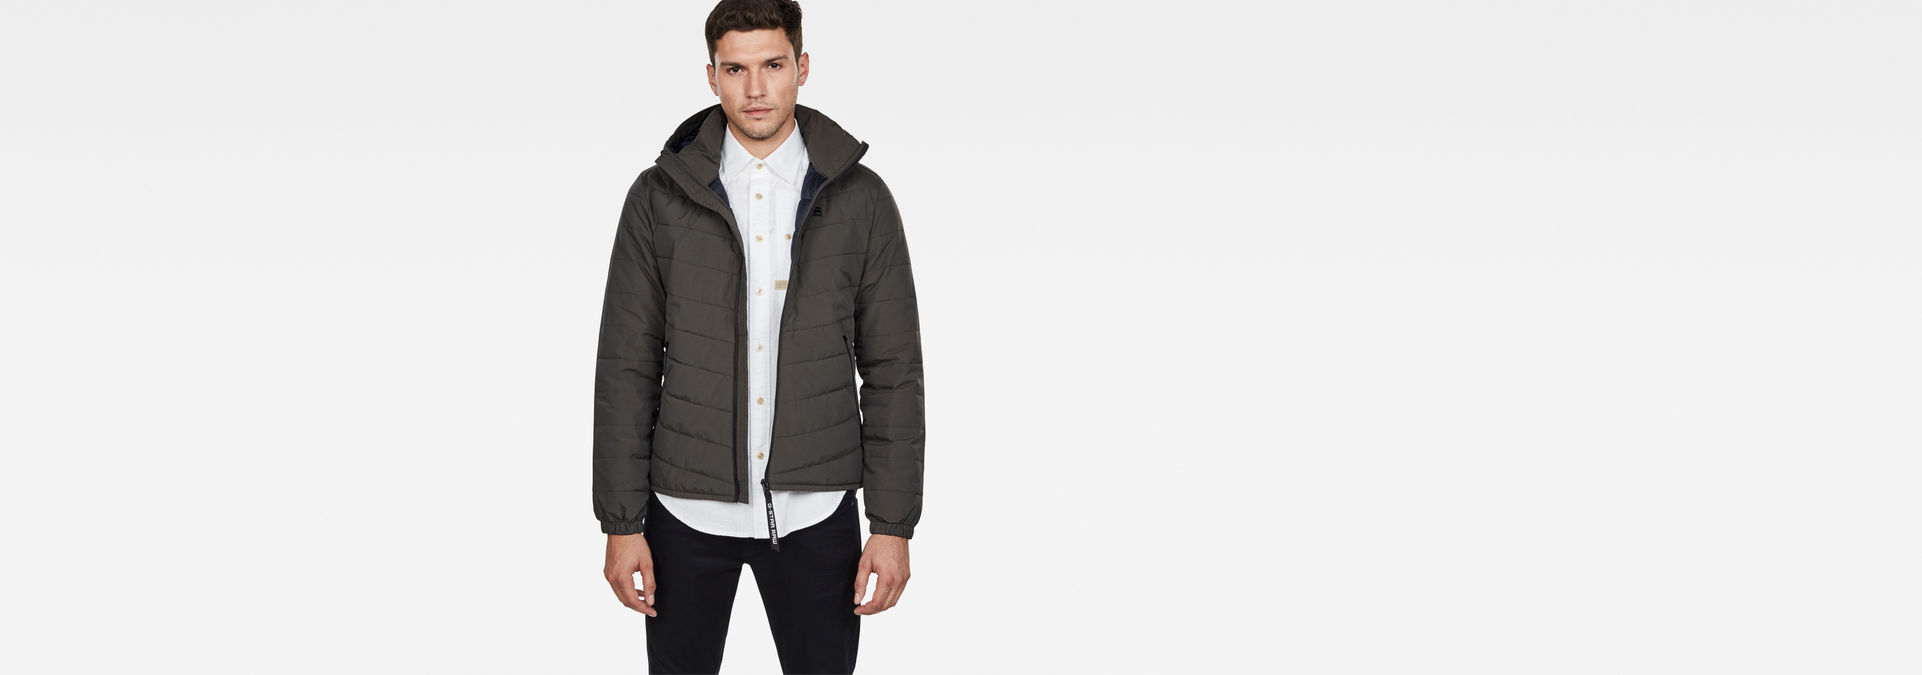 Attacc Quilted Hooded Jacket | Asfalt | Men | G Star RAW®